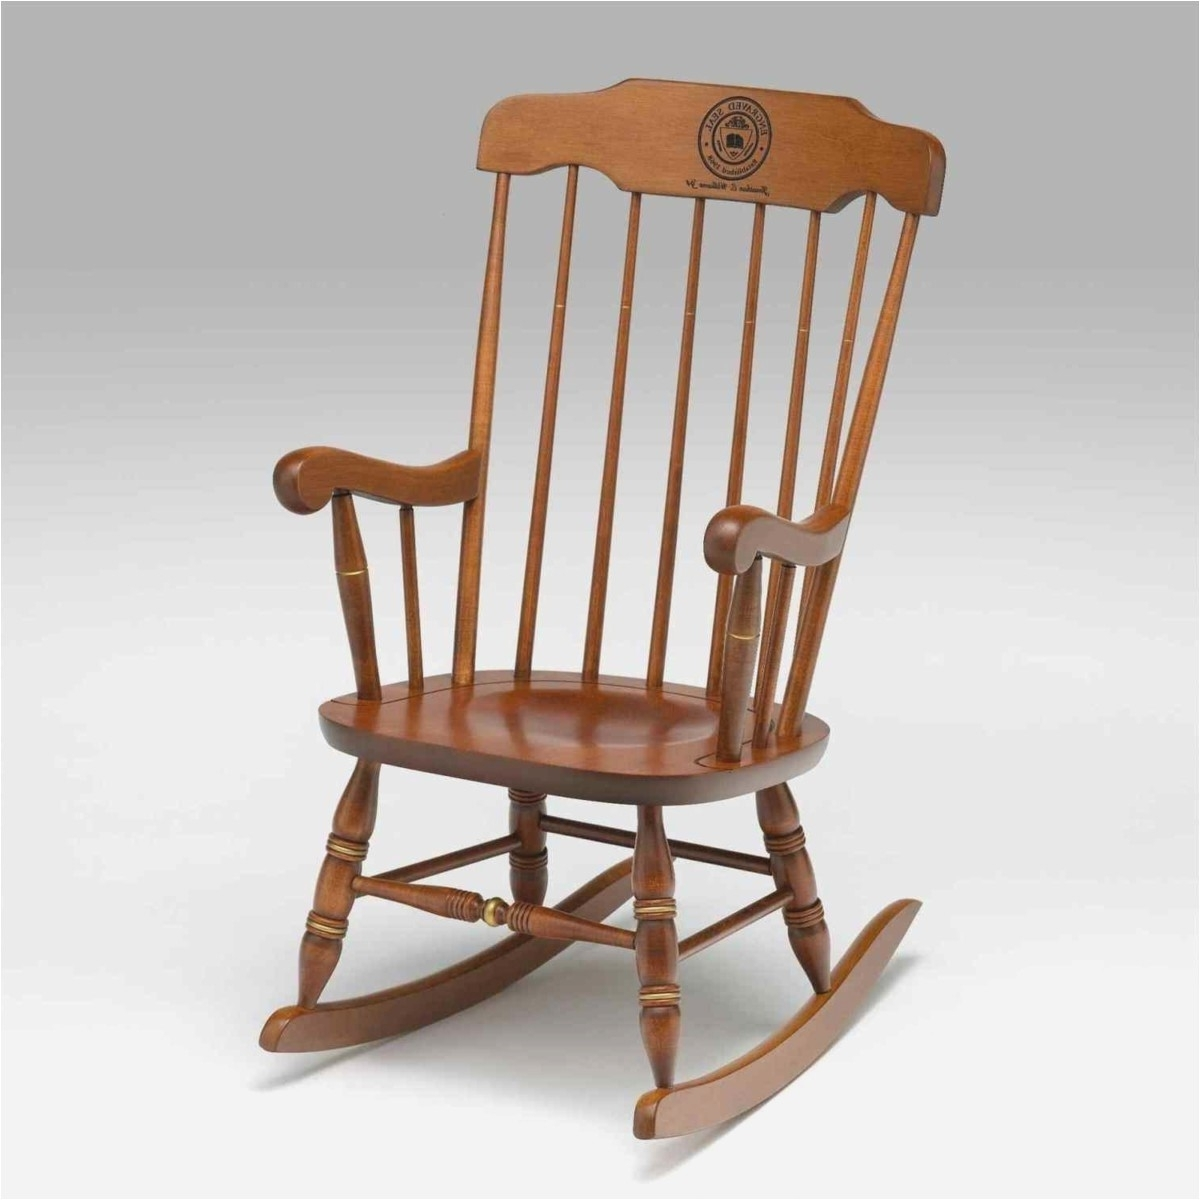 Wooden Rocking Chair With Footrest Archives – Chair Furniture Intended For Well Known Rocking Chairs With Footrest (View 11 of 20)